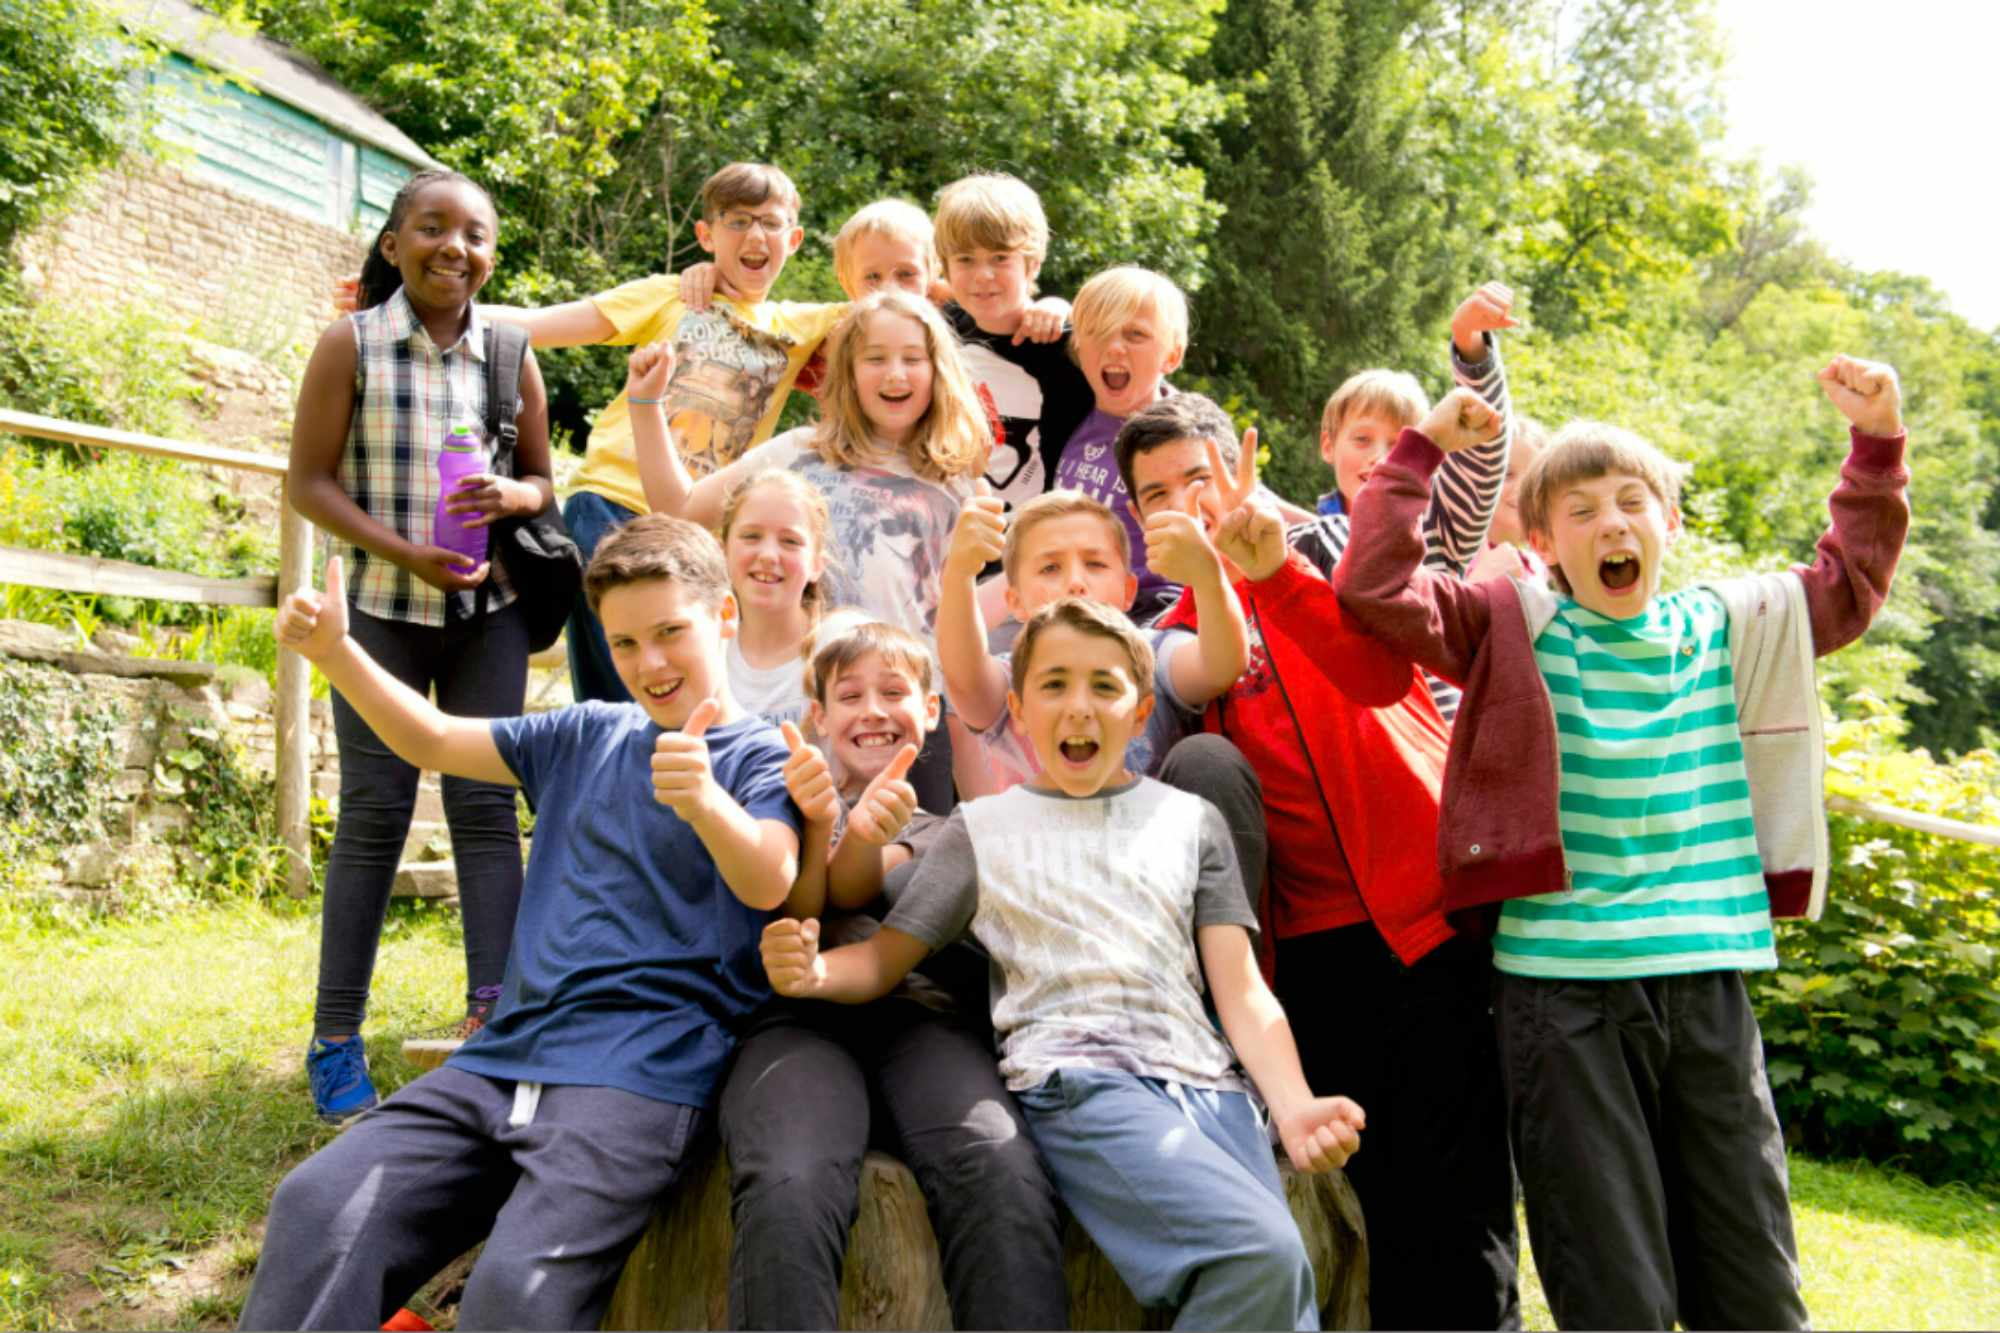 A group of children on a school trip